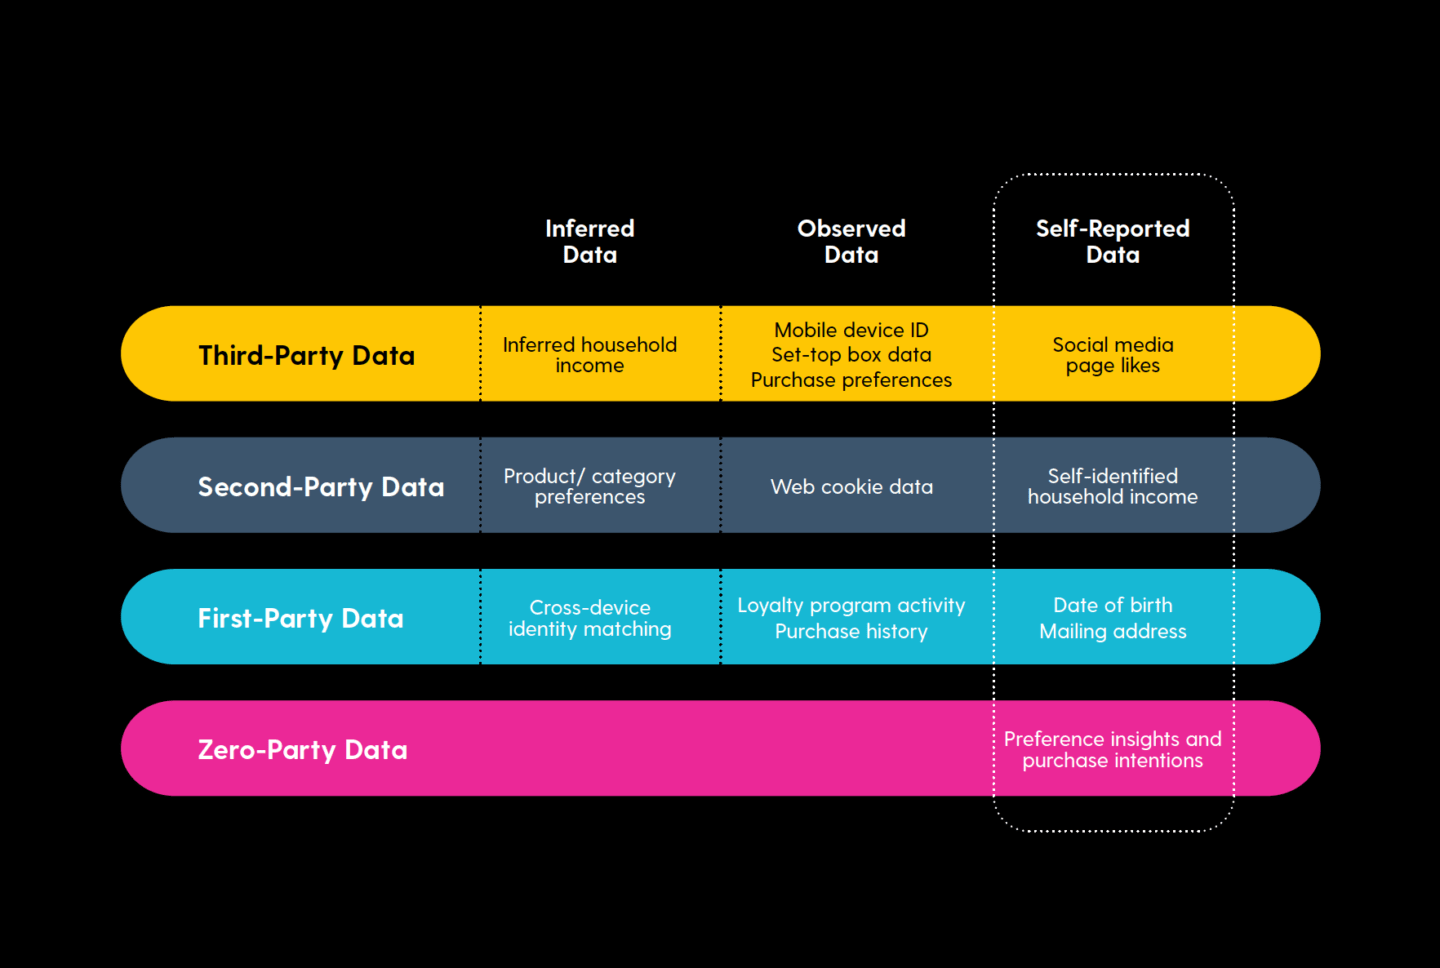 Zero-Party Data: A New Way to Personalize the Customer Experience